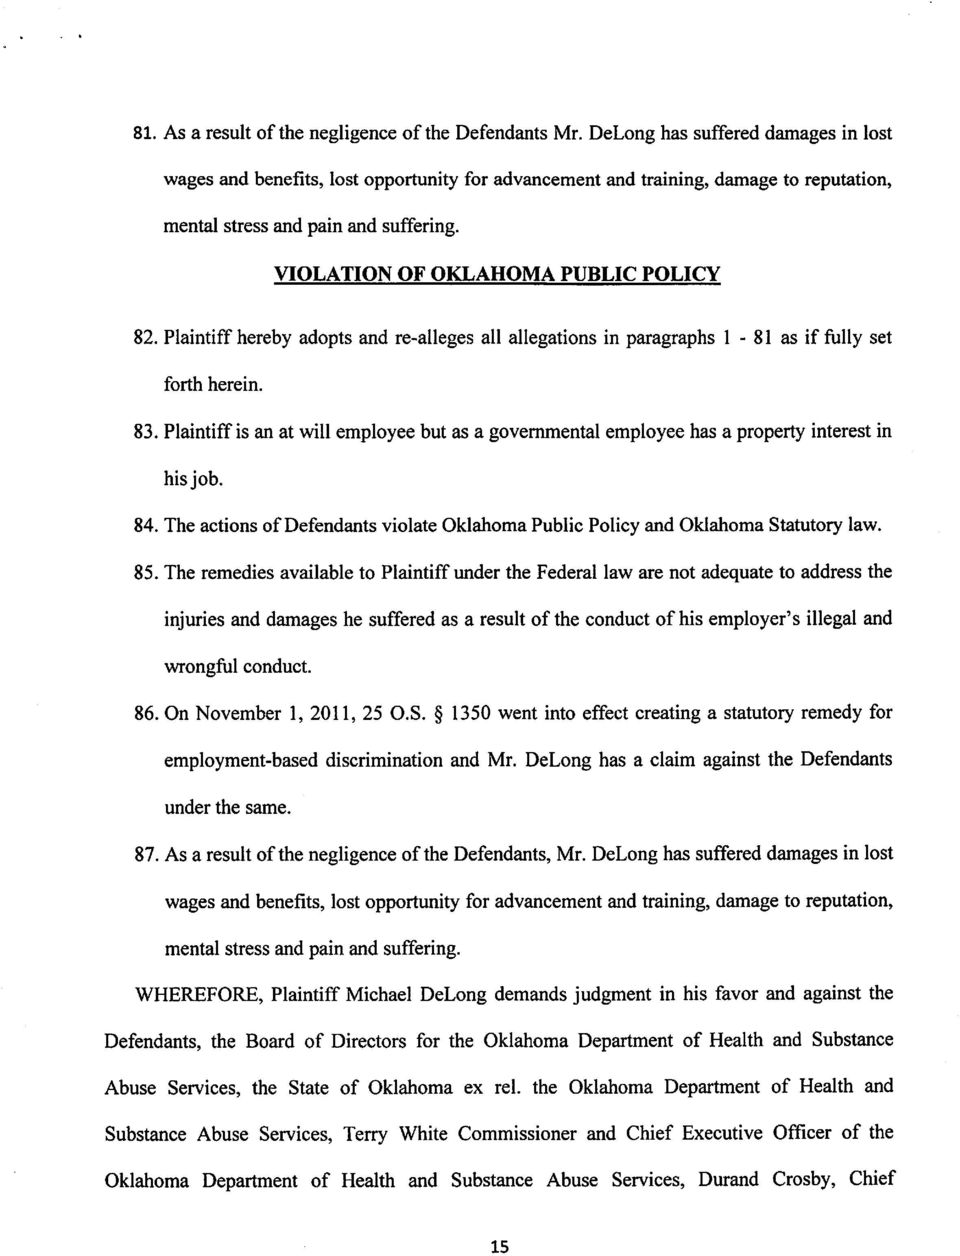 VIOLATION OF OKLAHOMA PUBLIC POLICY 82. Plaintiff hereby adopts and re-alleges all allegations in paragraphs 1-81 as if fully set forth herein. 83.